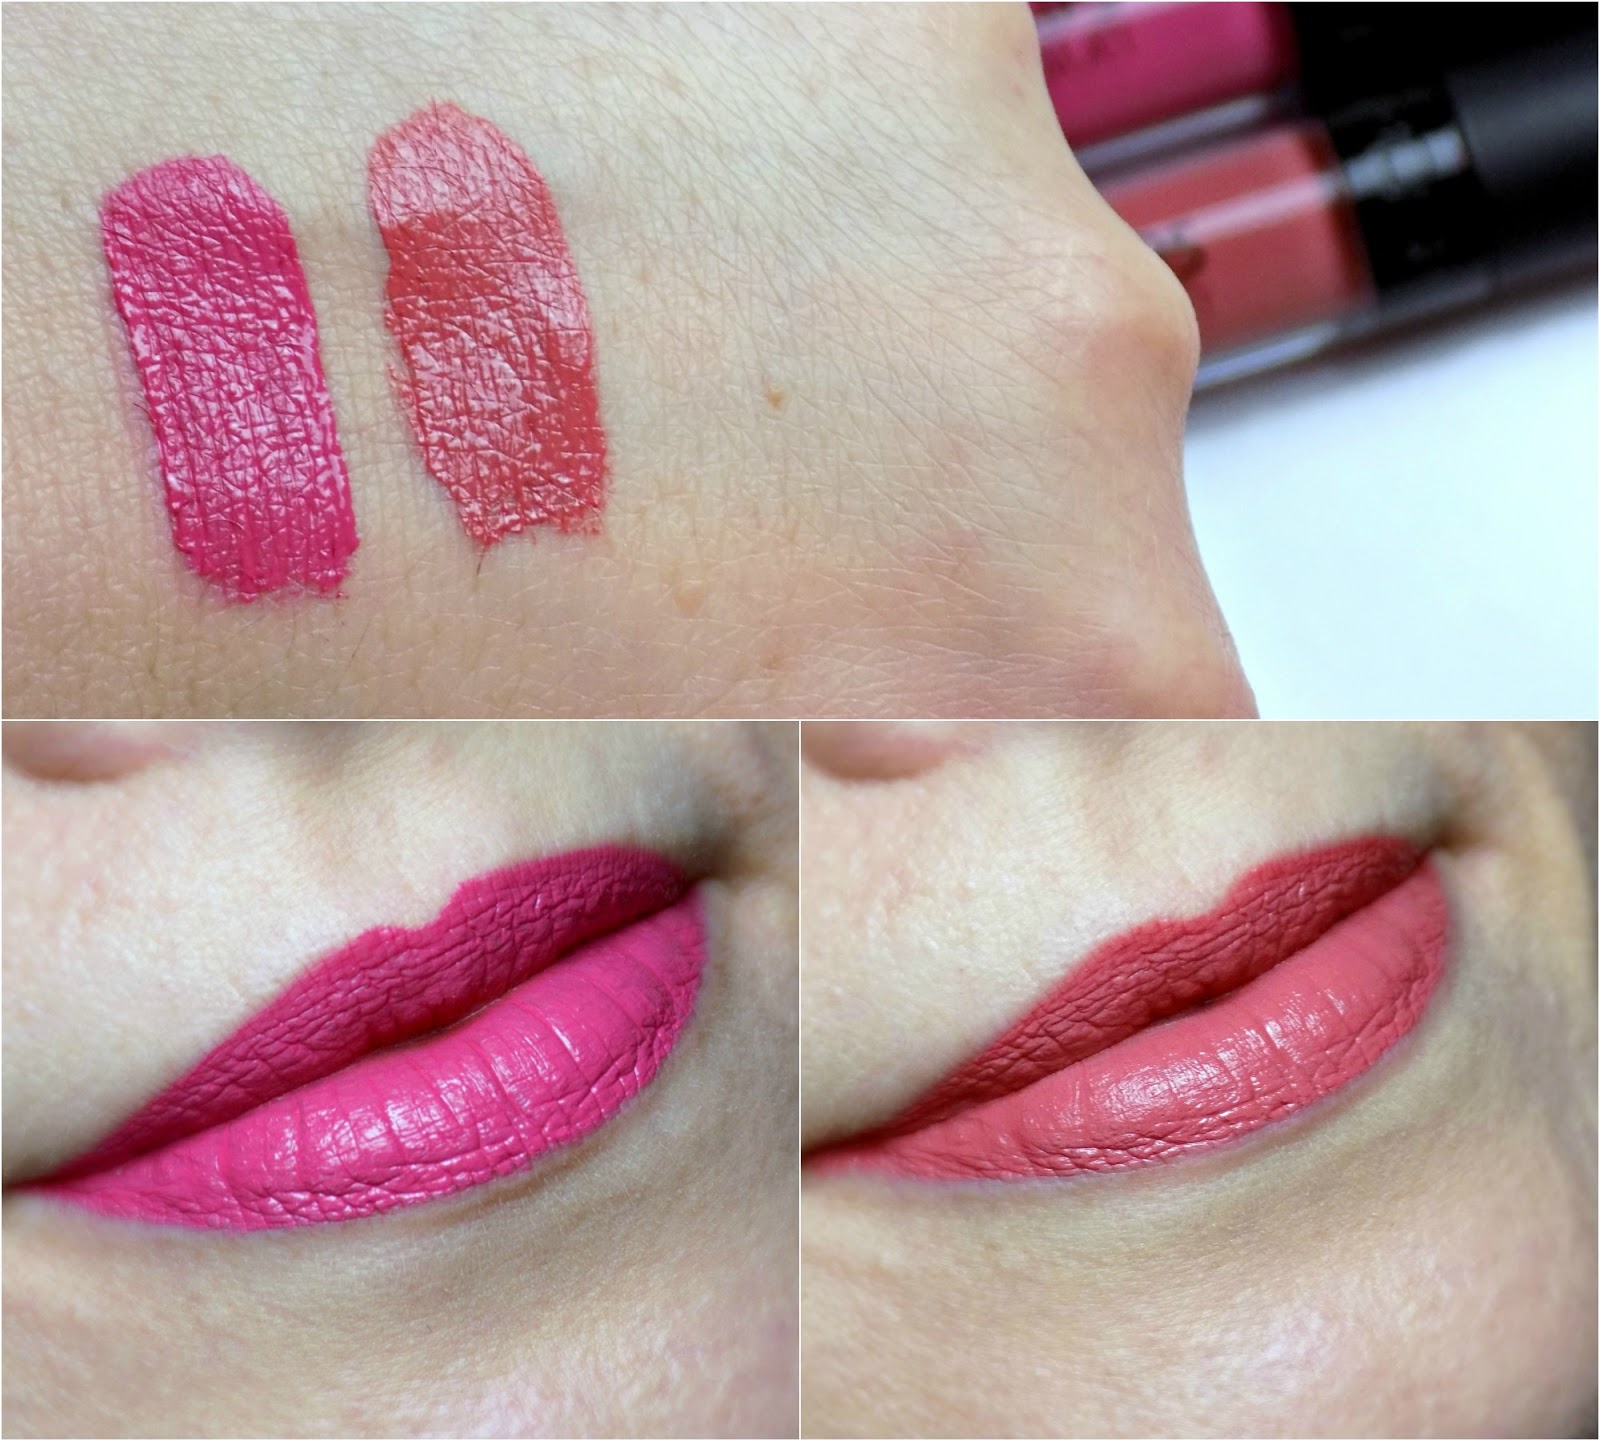 GOSH Liquid Matte Lips, Pink Sorbet, Nougat Fudge, swatches